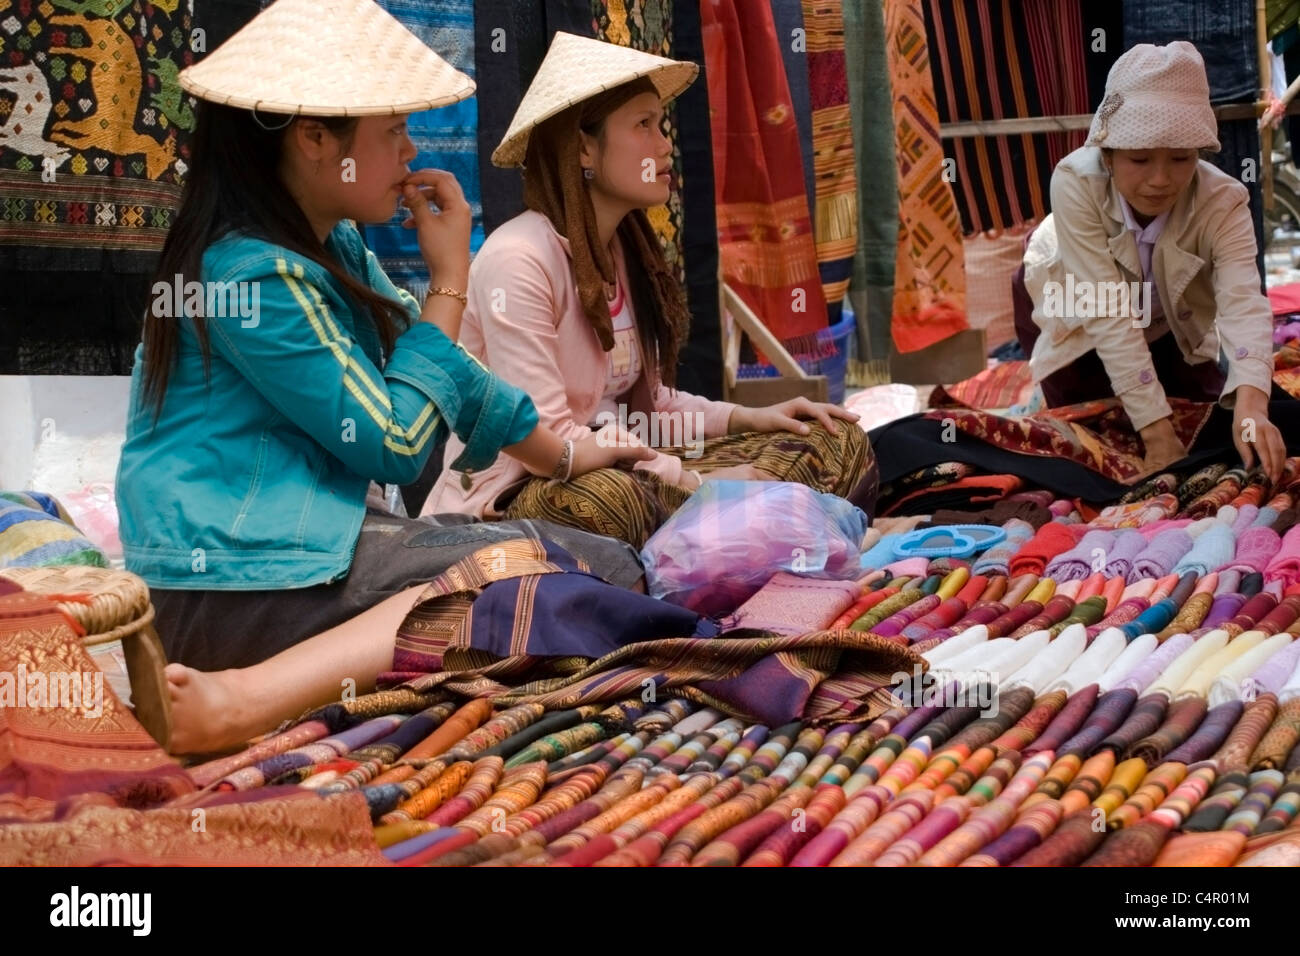 Asian women are selling colorful cloth goods at a street market in Luang Prabang, Laos. - Stock Image